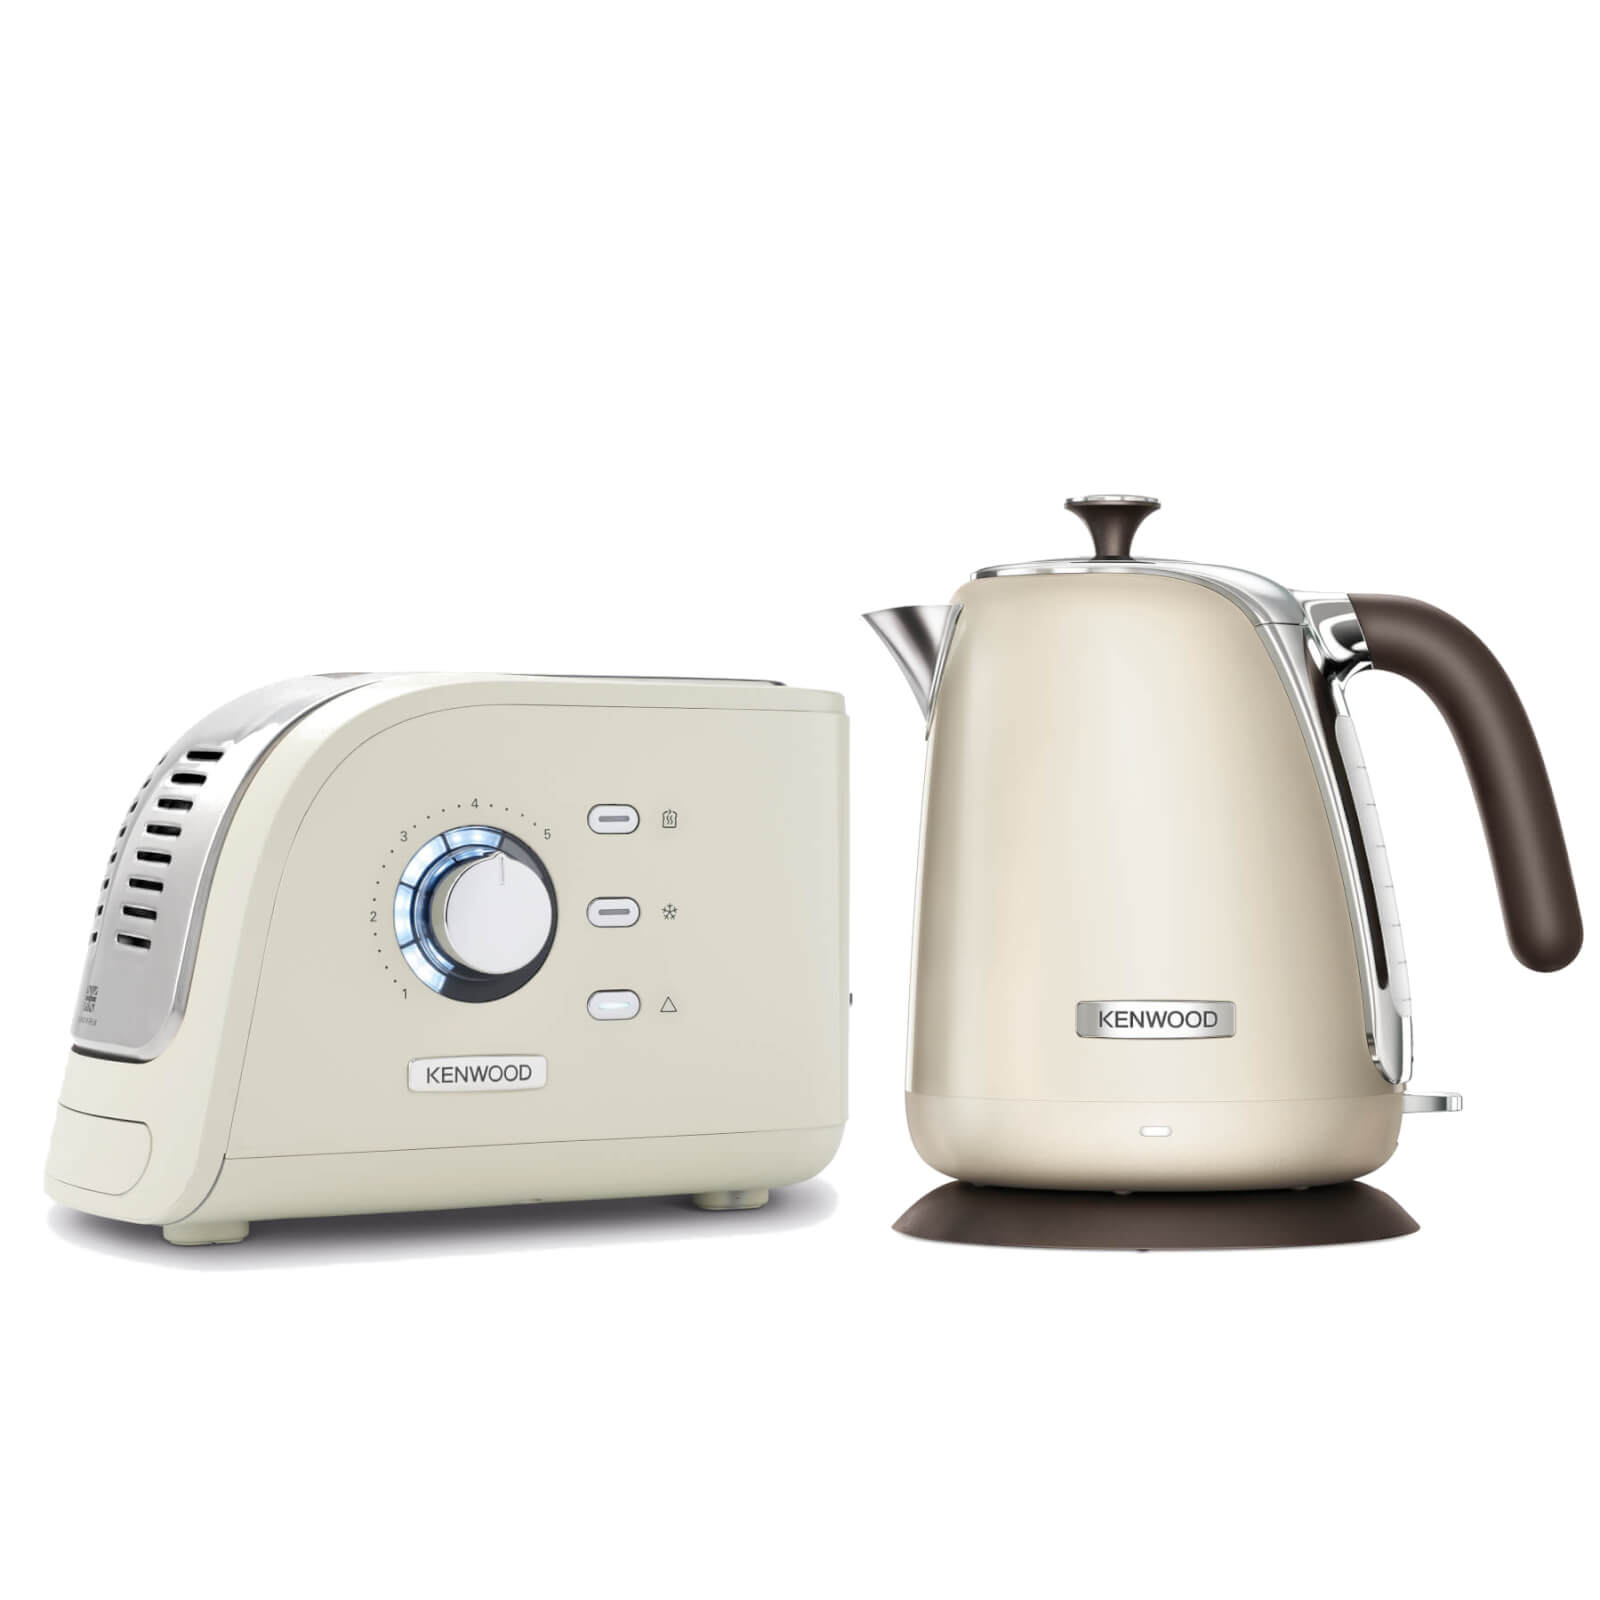 Kenwood Turbo Collection Kettle and Toaster Bundle - Cream